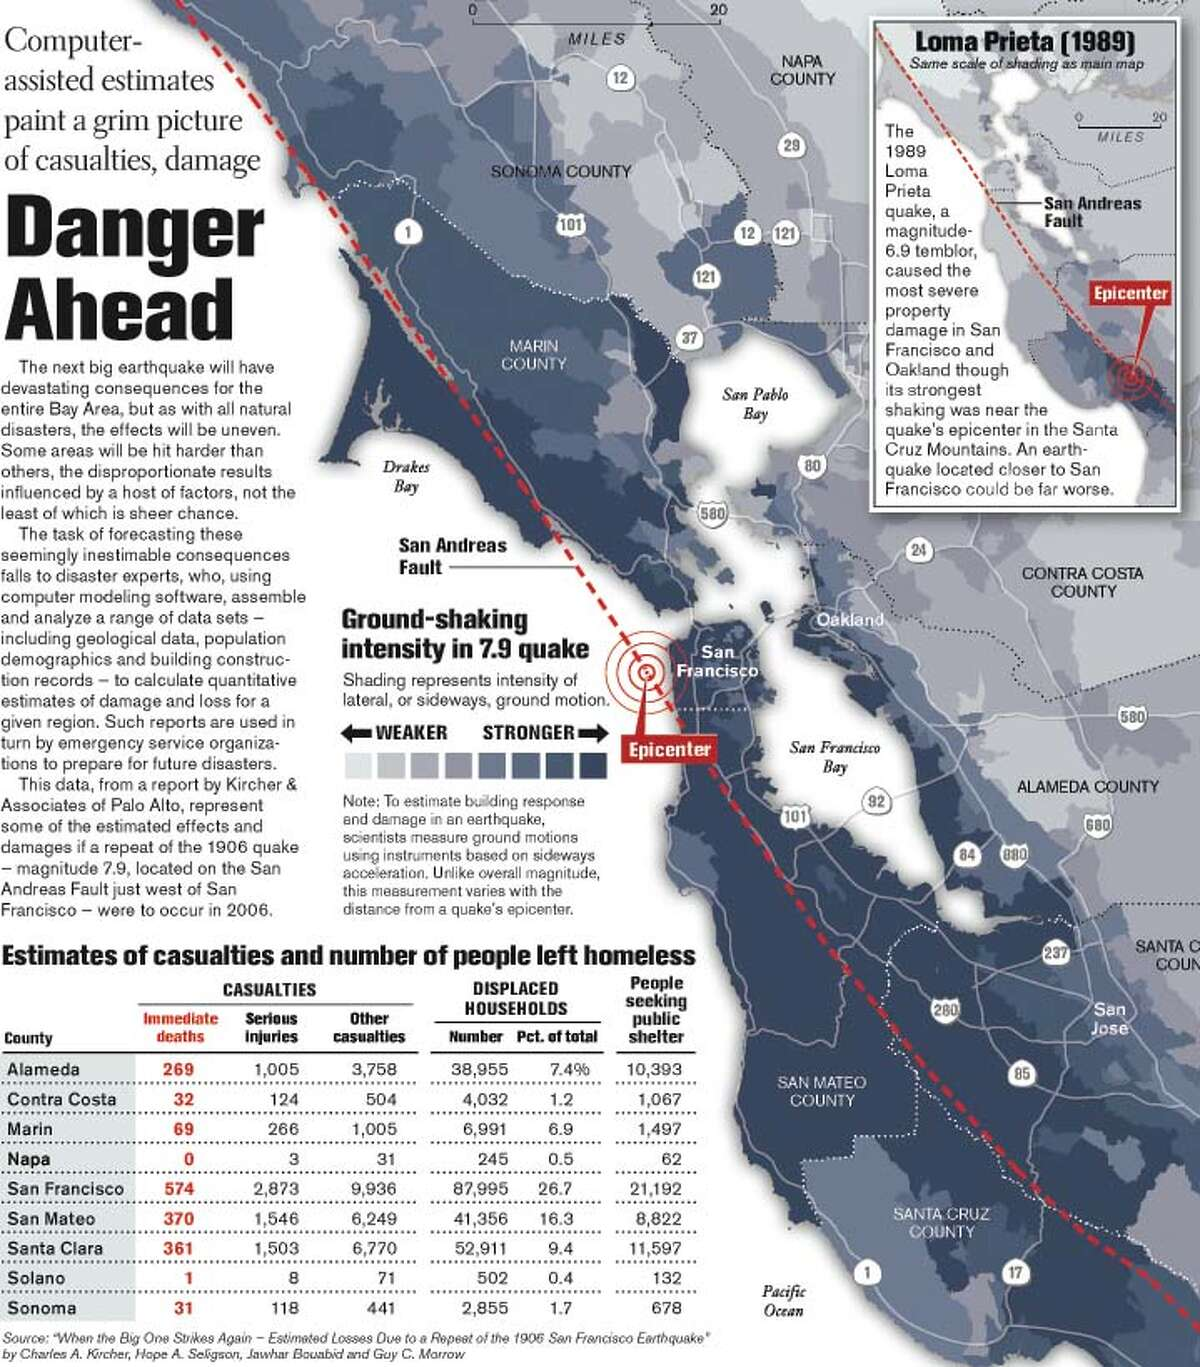 Danger Ahead. Chronicle graphic by Todd Trumbull